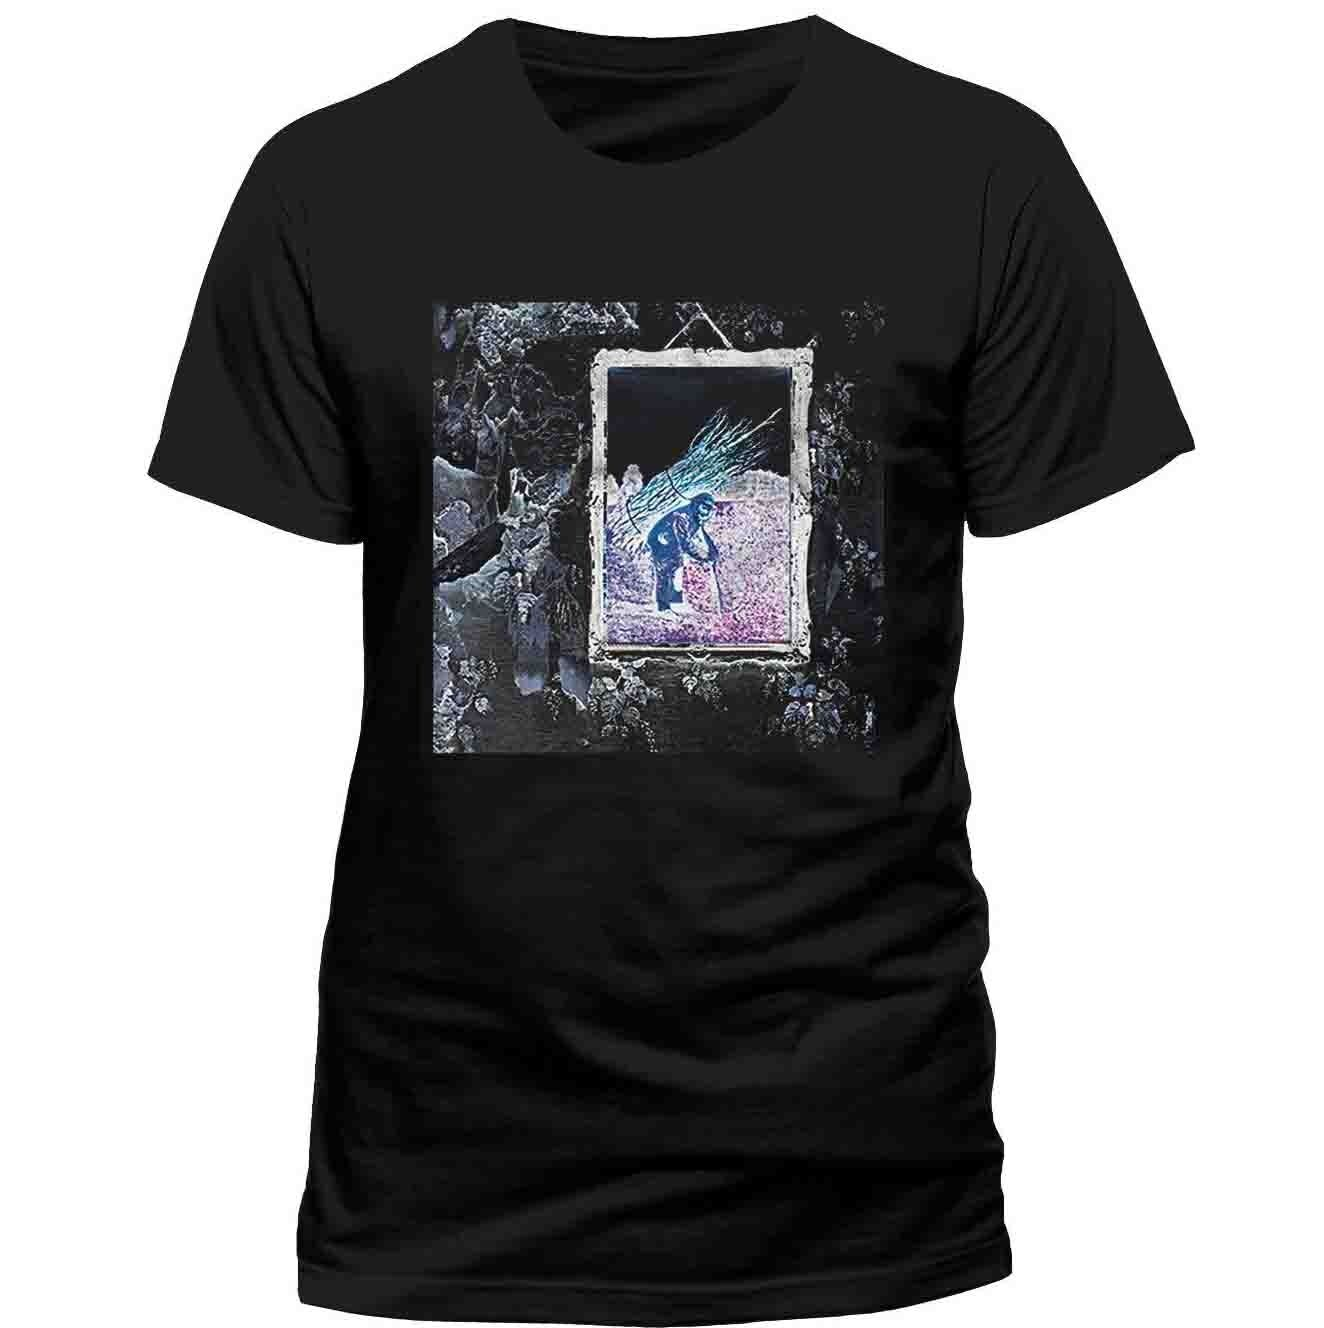 Led Zeppelin Iv Album Shirt Official Tshirt Rock Band T-Shirt New Streetwear Size S-3Xl image